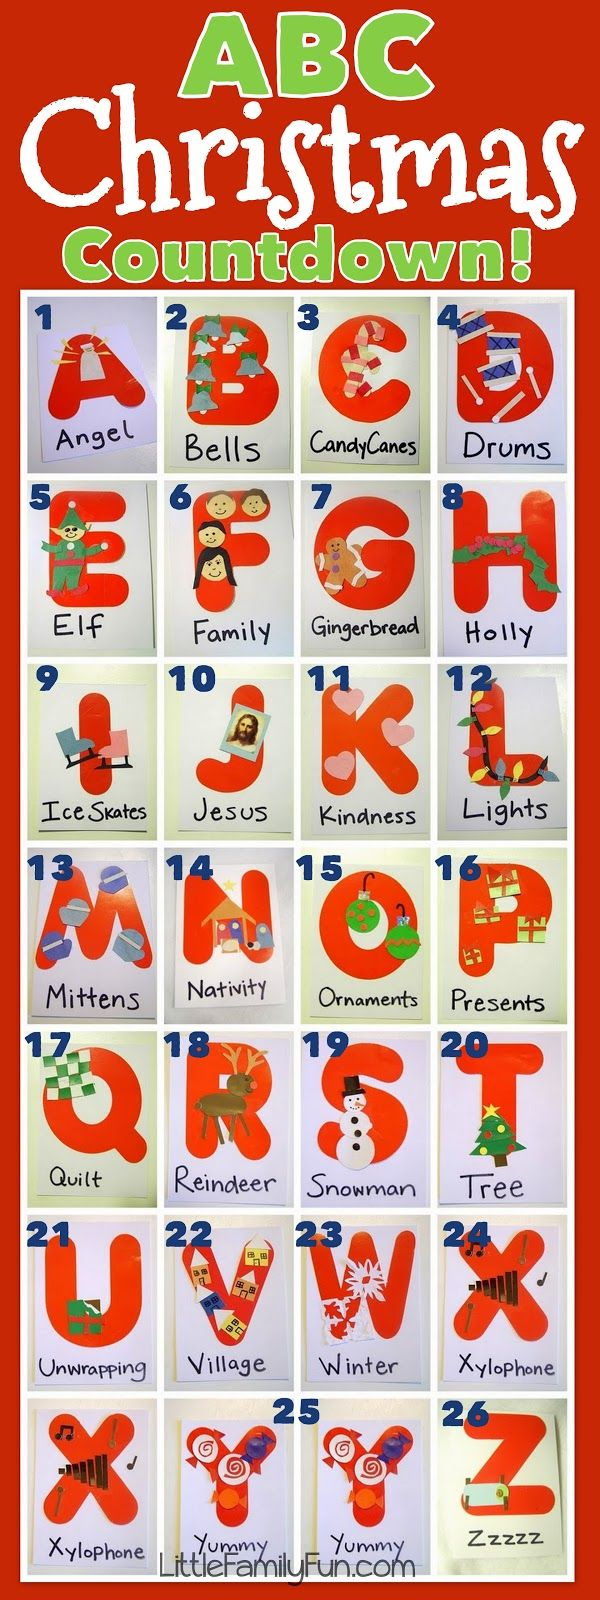 Countdown to Christmas using the ABCs. Includes some activities that go with the letters.